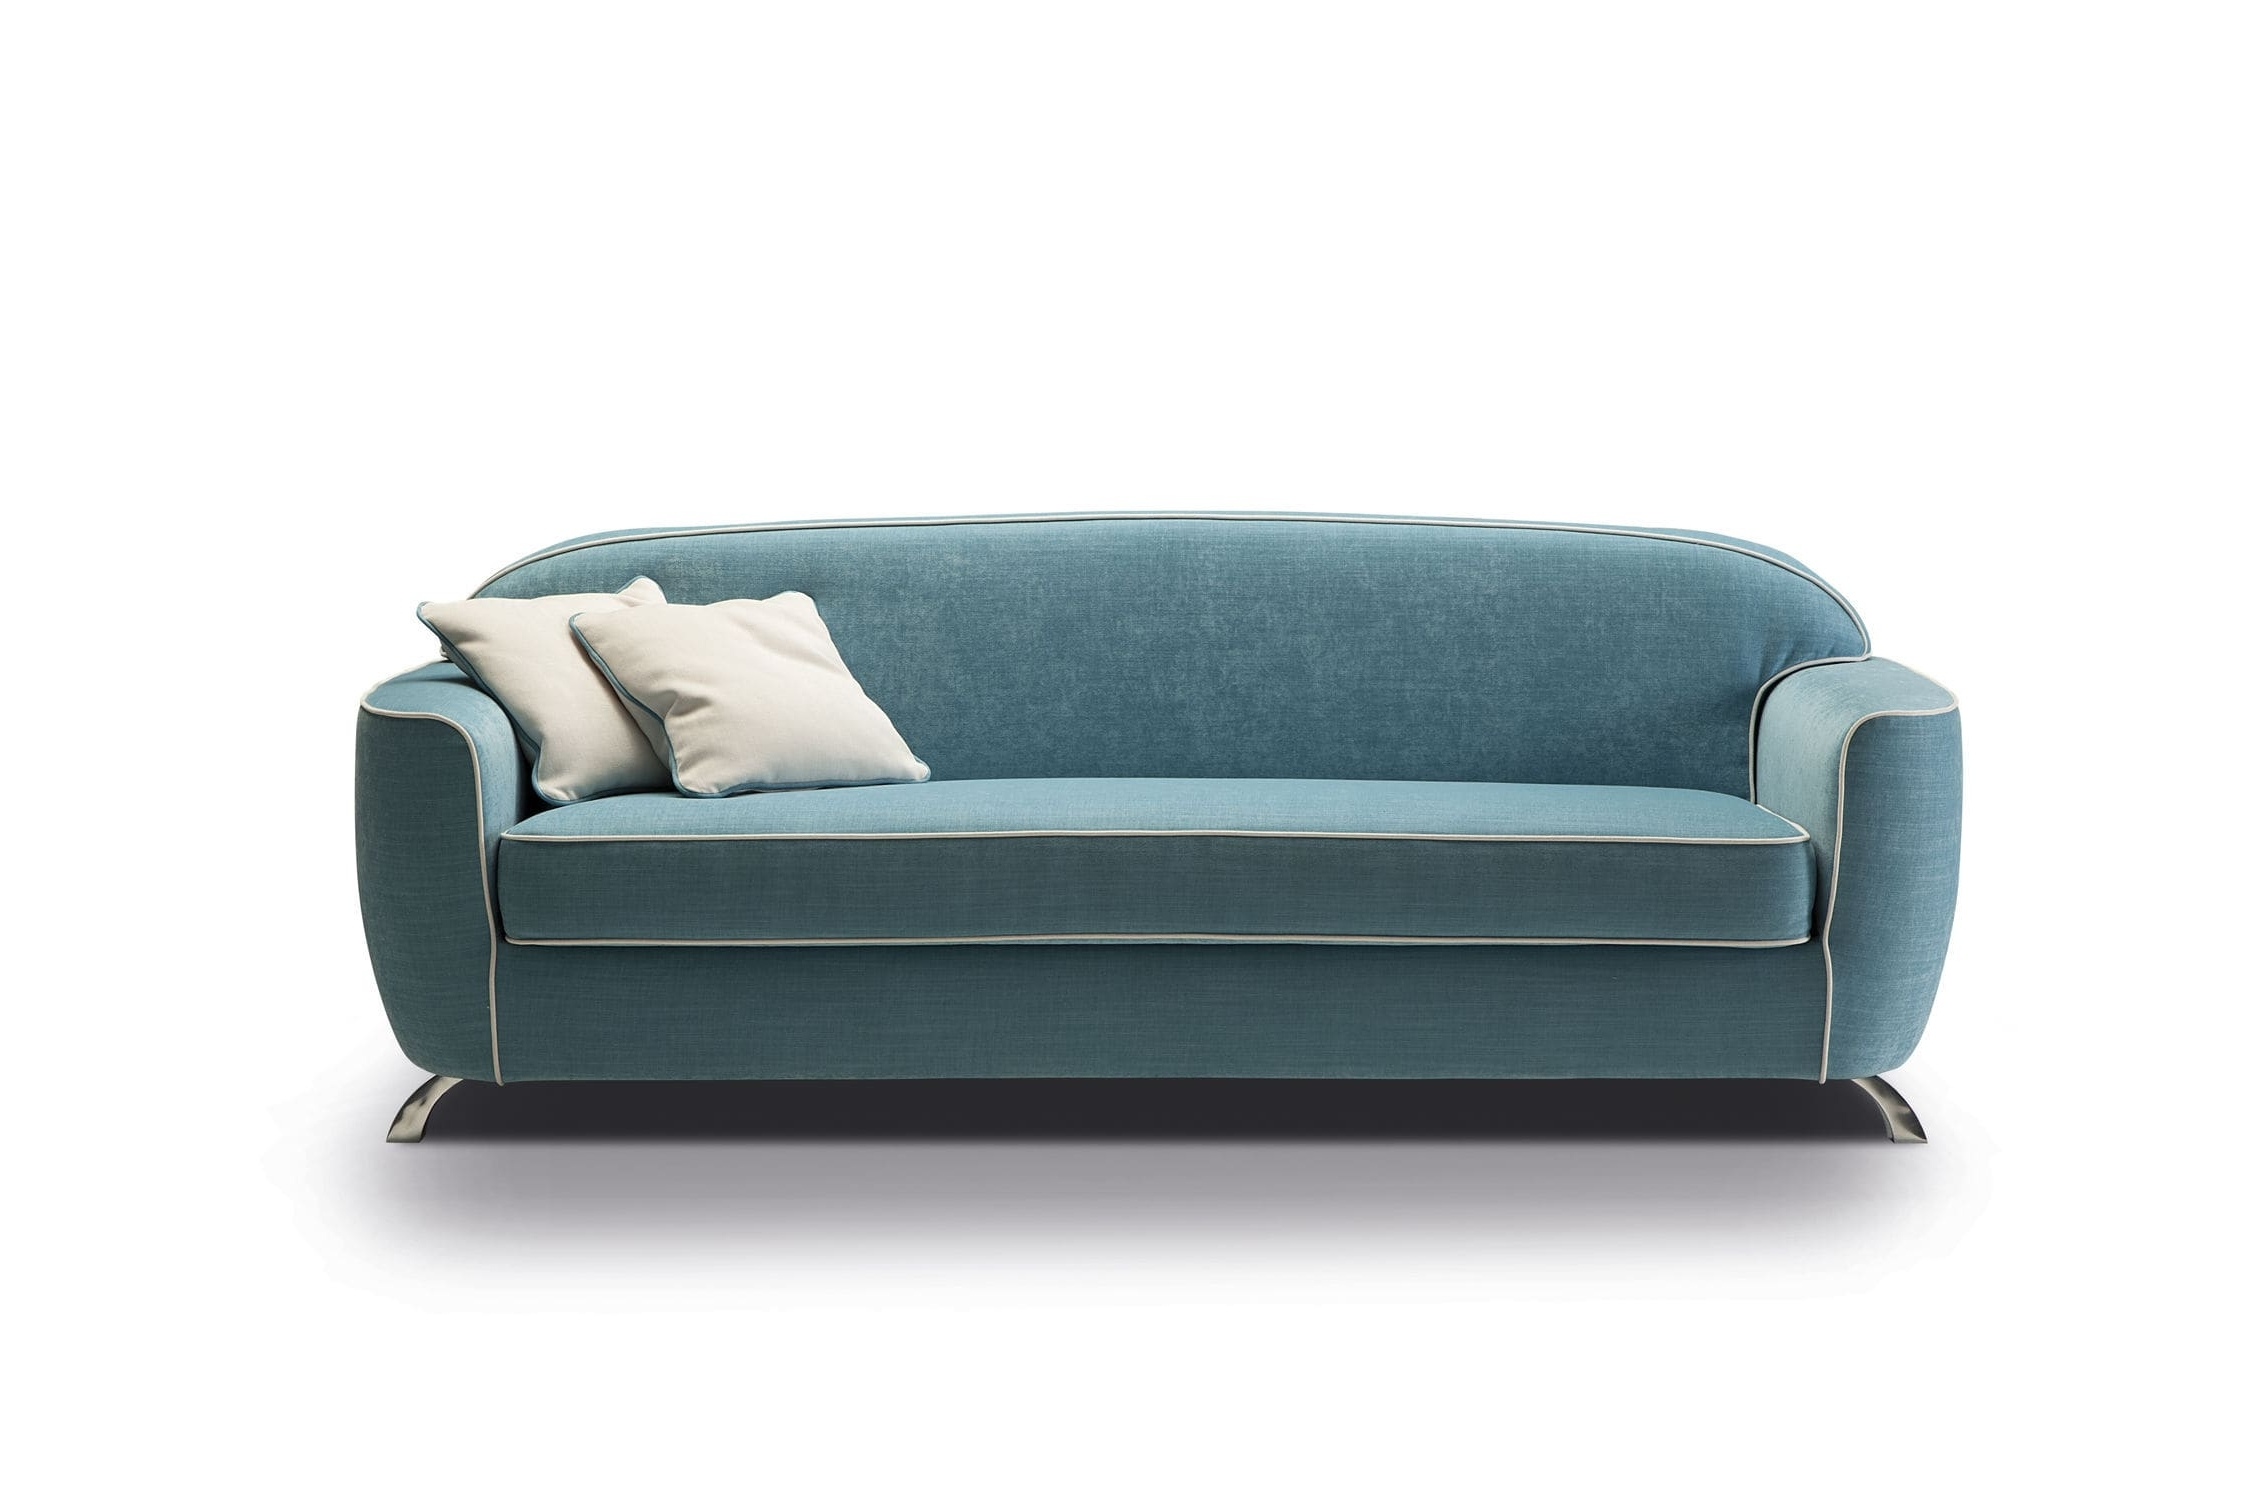 Sofa Bed / Contemporary / Fabric / With Washable Removable Cover Inside Trendy Sofas With Washable Covers (View 4 of 15)